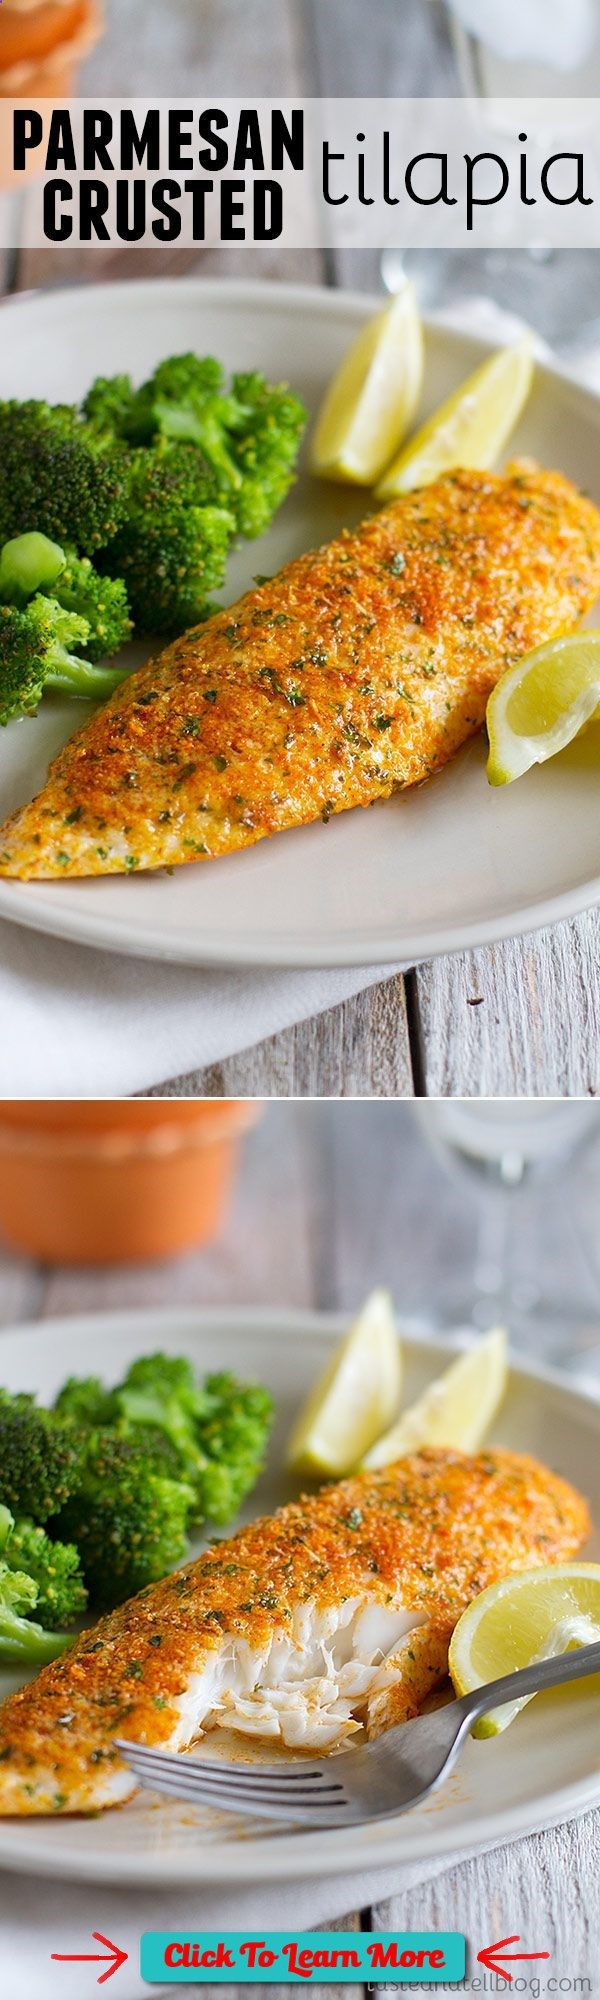 #FastestWayToLoseWeight by EATING, Click to learn more, This Parmesan Crusted Tilapia is a simple fish recipe that is done in 20 minutes and will even impress non-fish lovers! , #HealthyRecipes, #FitnessRecipes, #BurnFatRecipes, #WeightLossRecipes, #WeightLossDiets